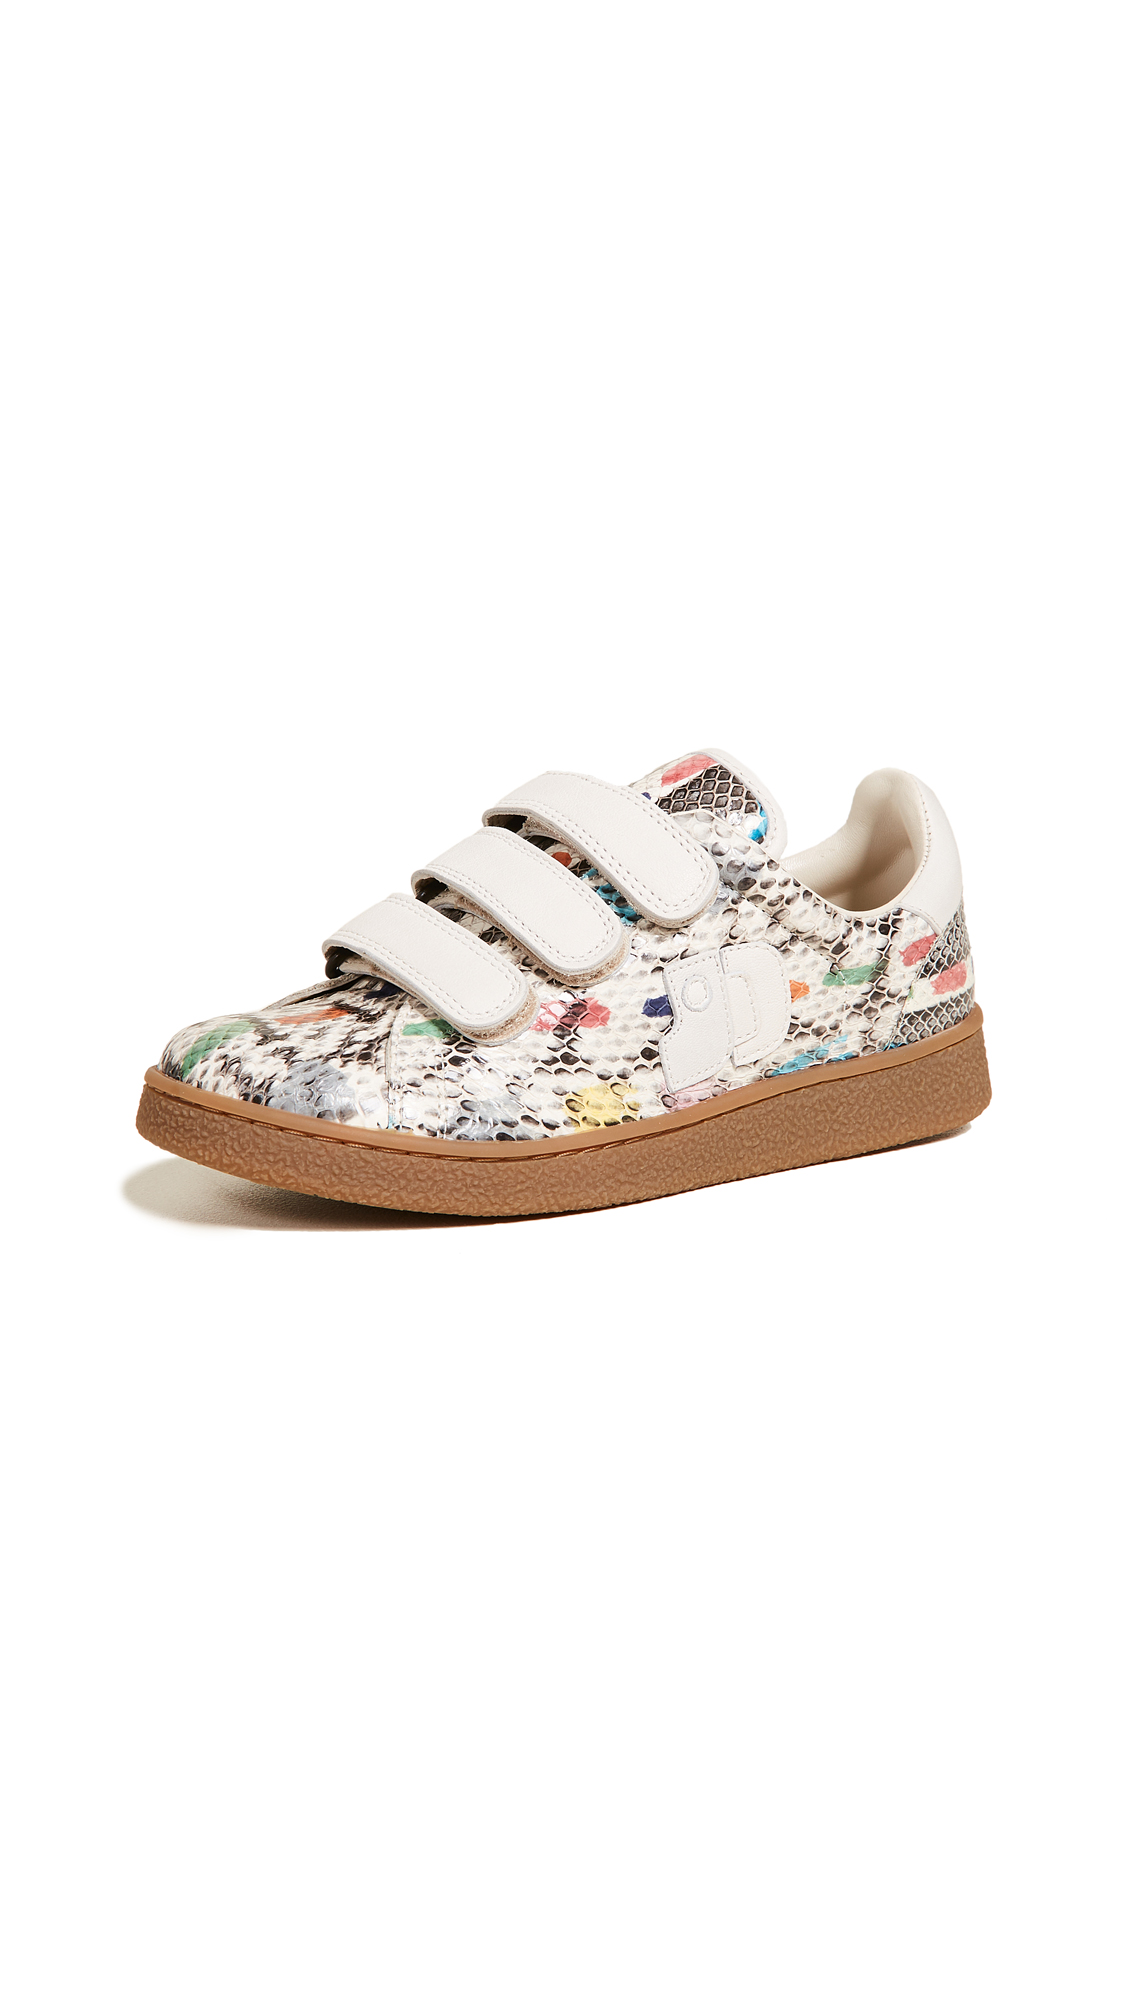 Jerome Dreyfuss Run Sneakers - Snake